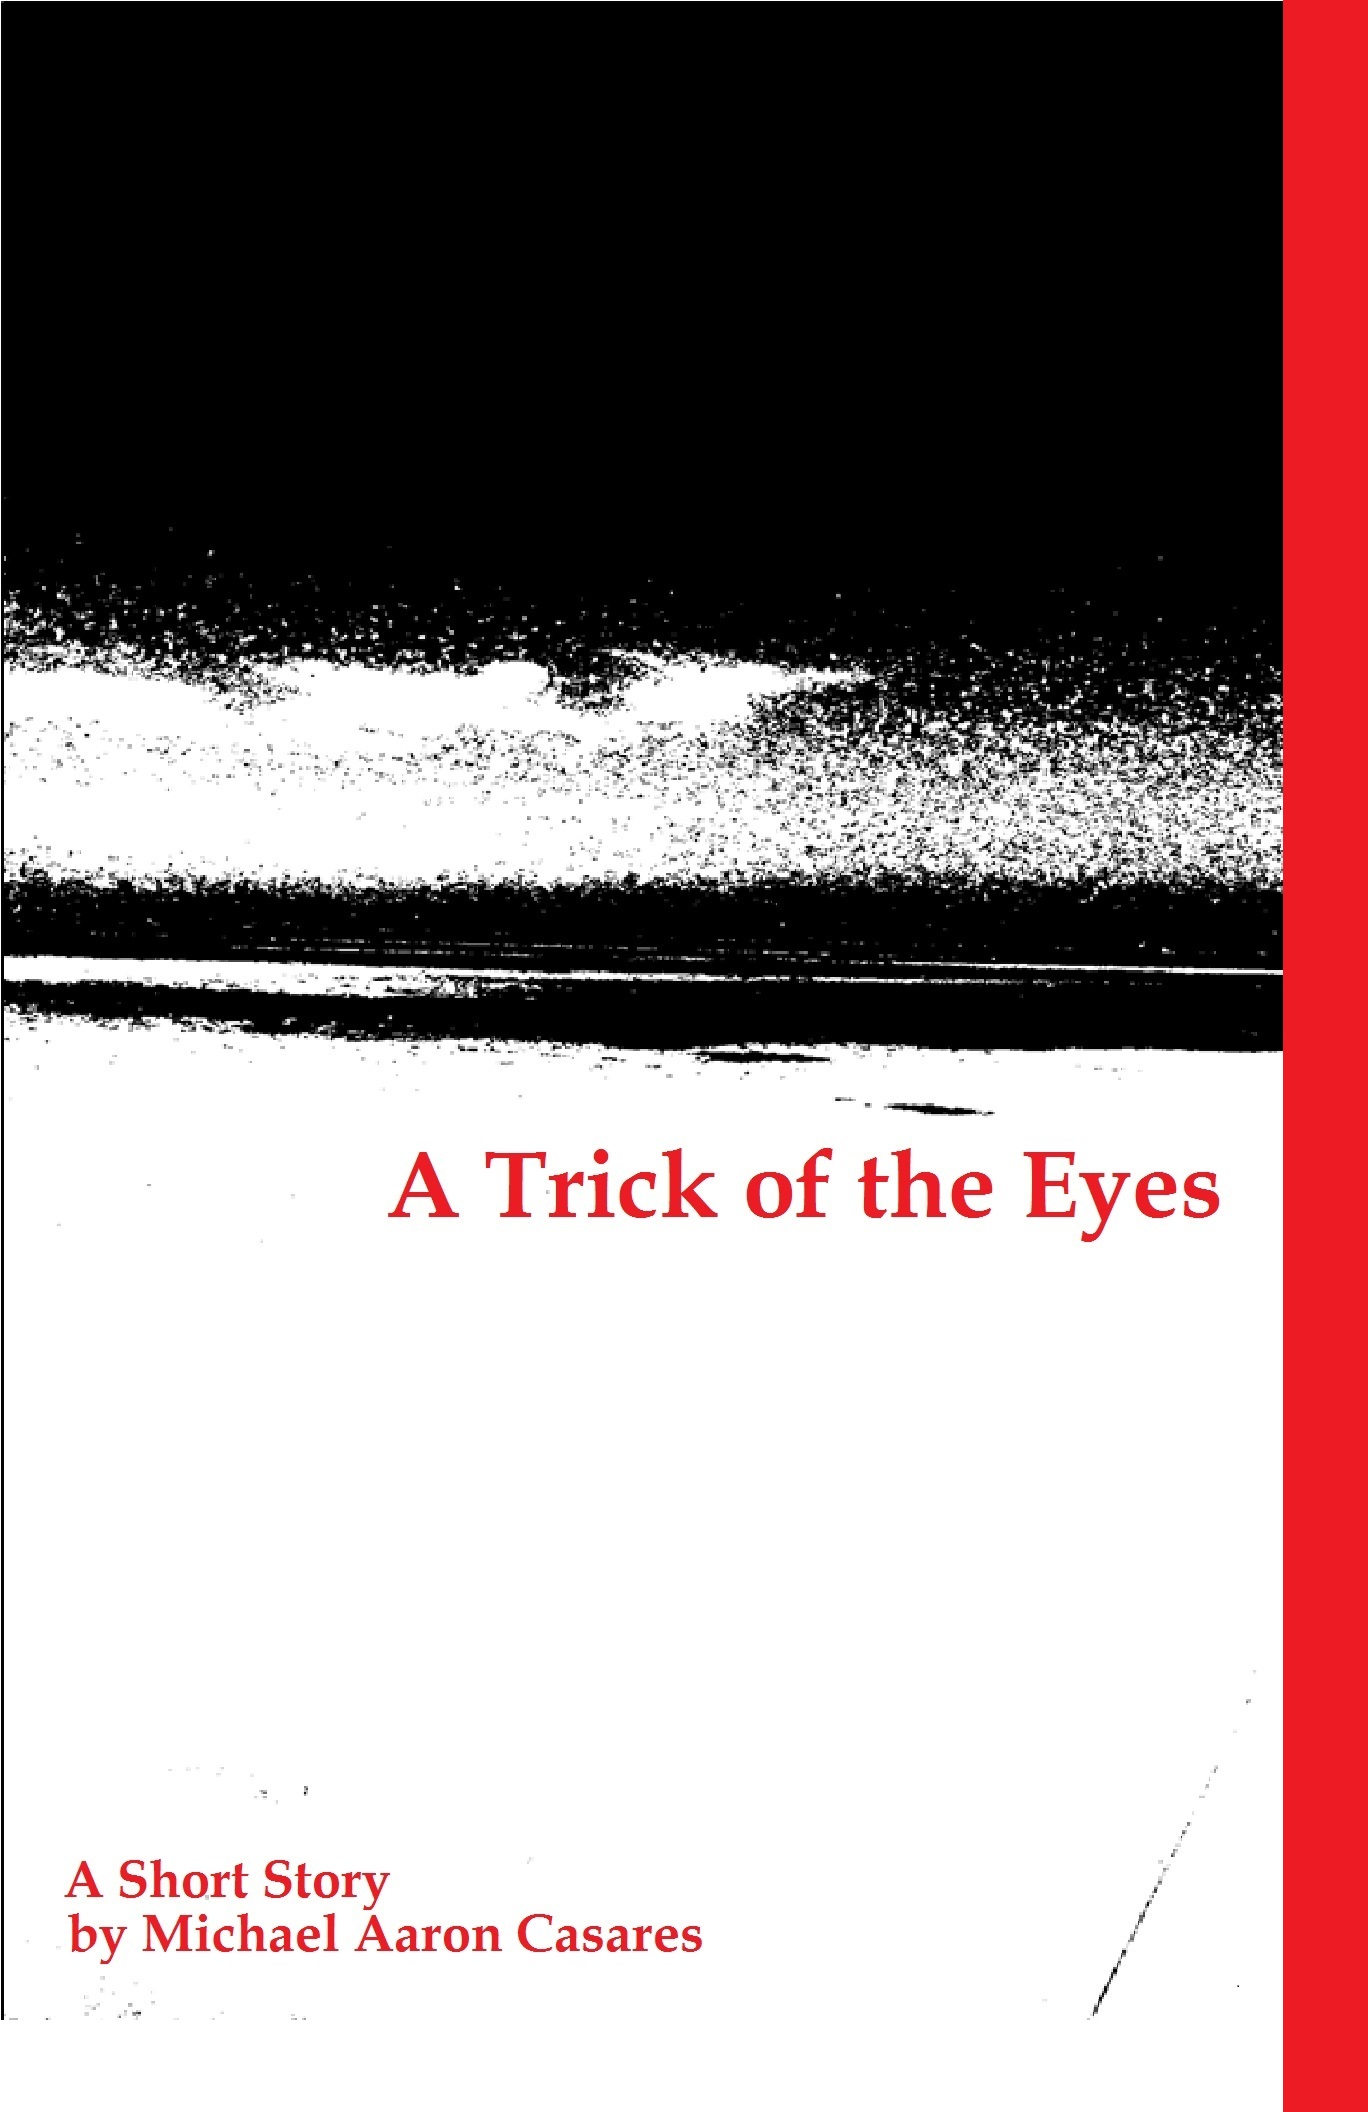 A Trick of the Eyes - Book